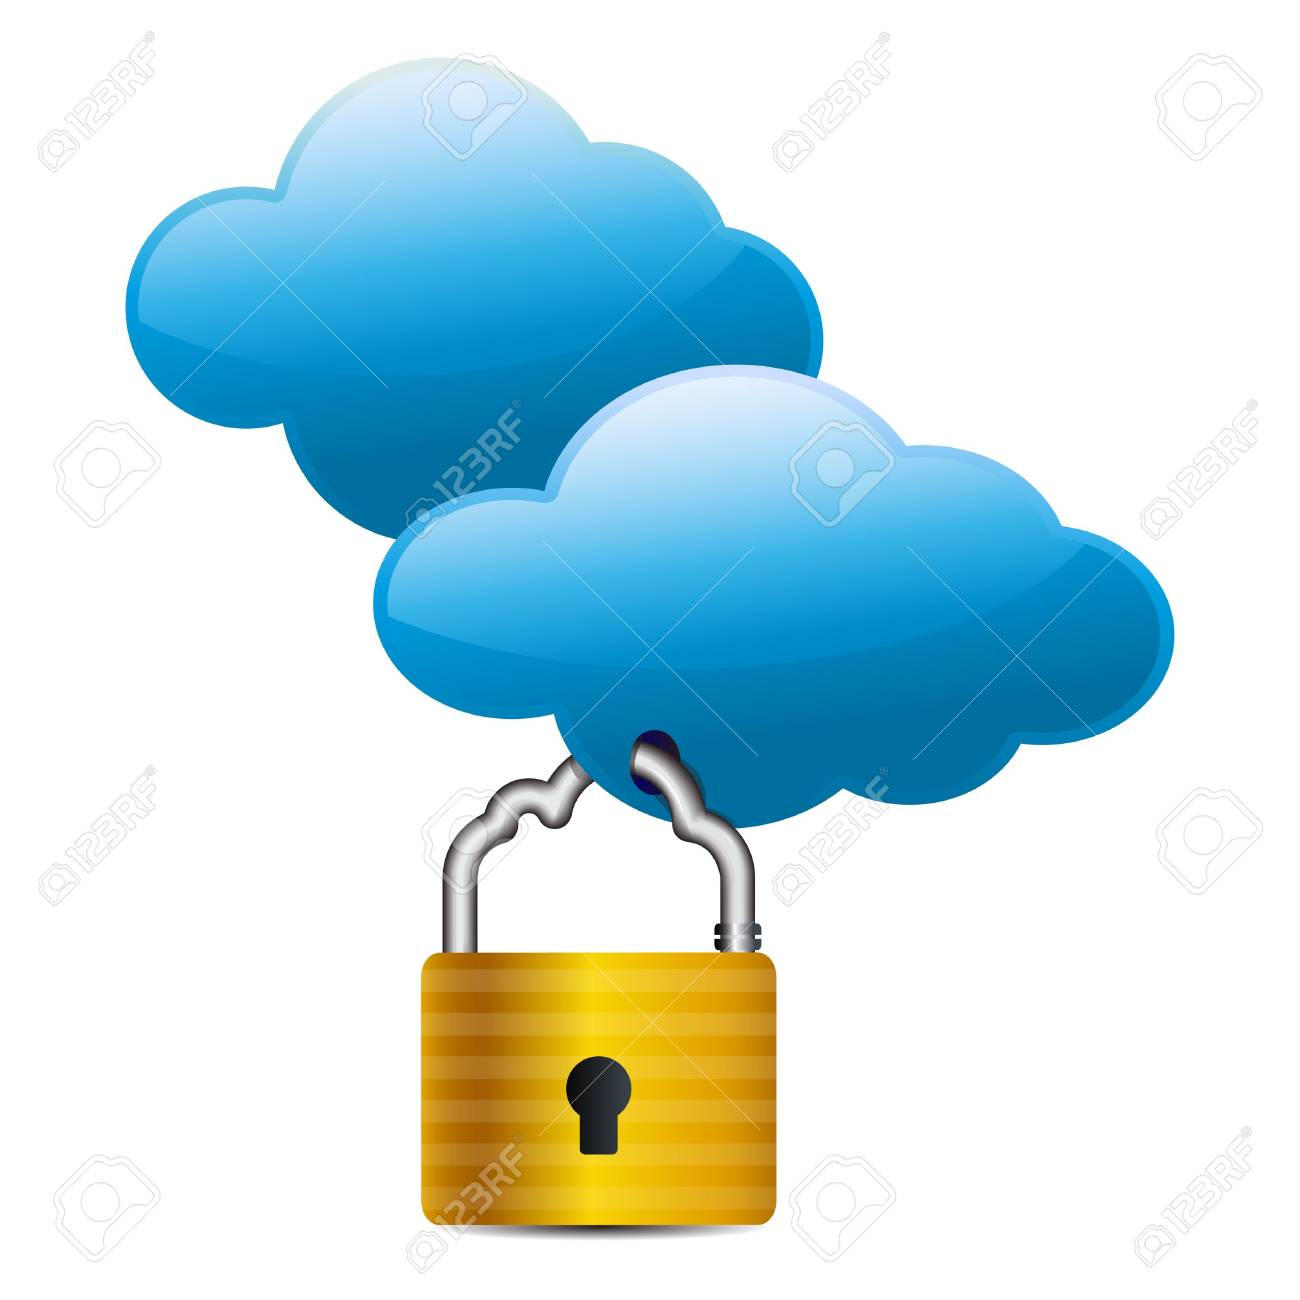 Cloud computing internet security concept Stock Vector - 13548761